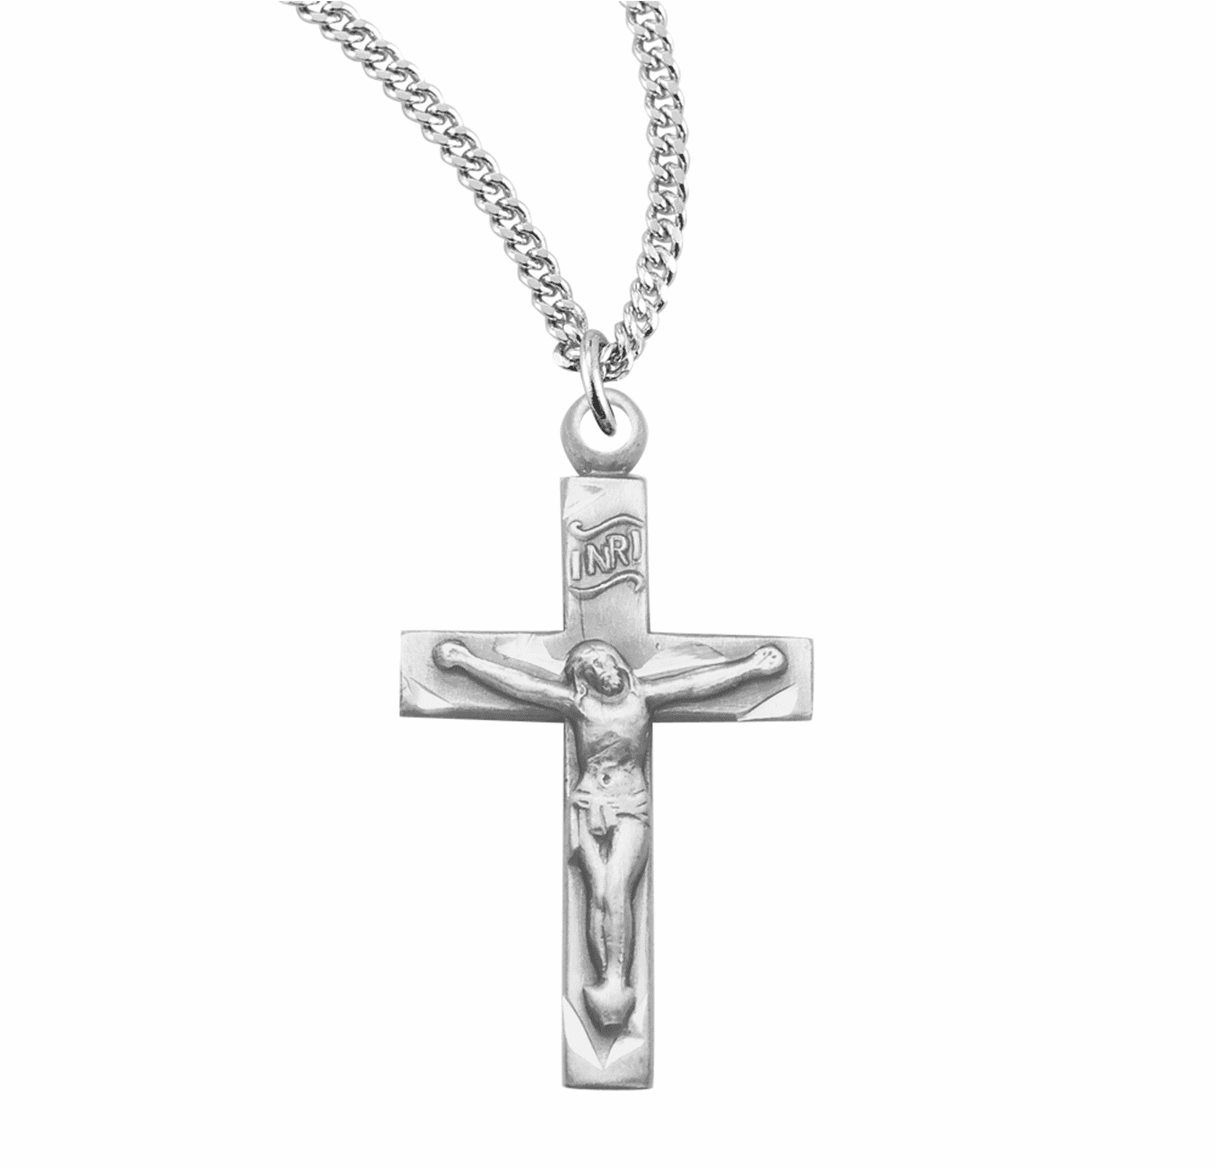 HMH Religious Basic Narrow Sterling Silver Crucifix Cross with Chain